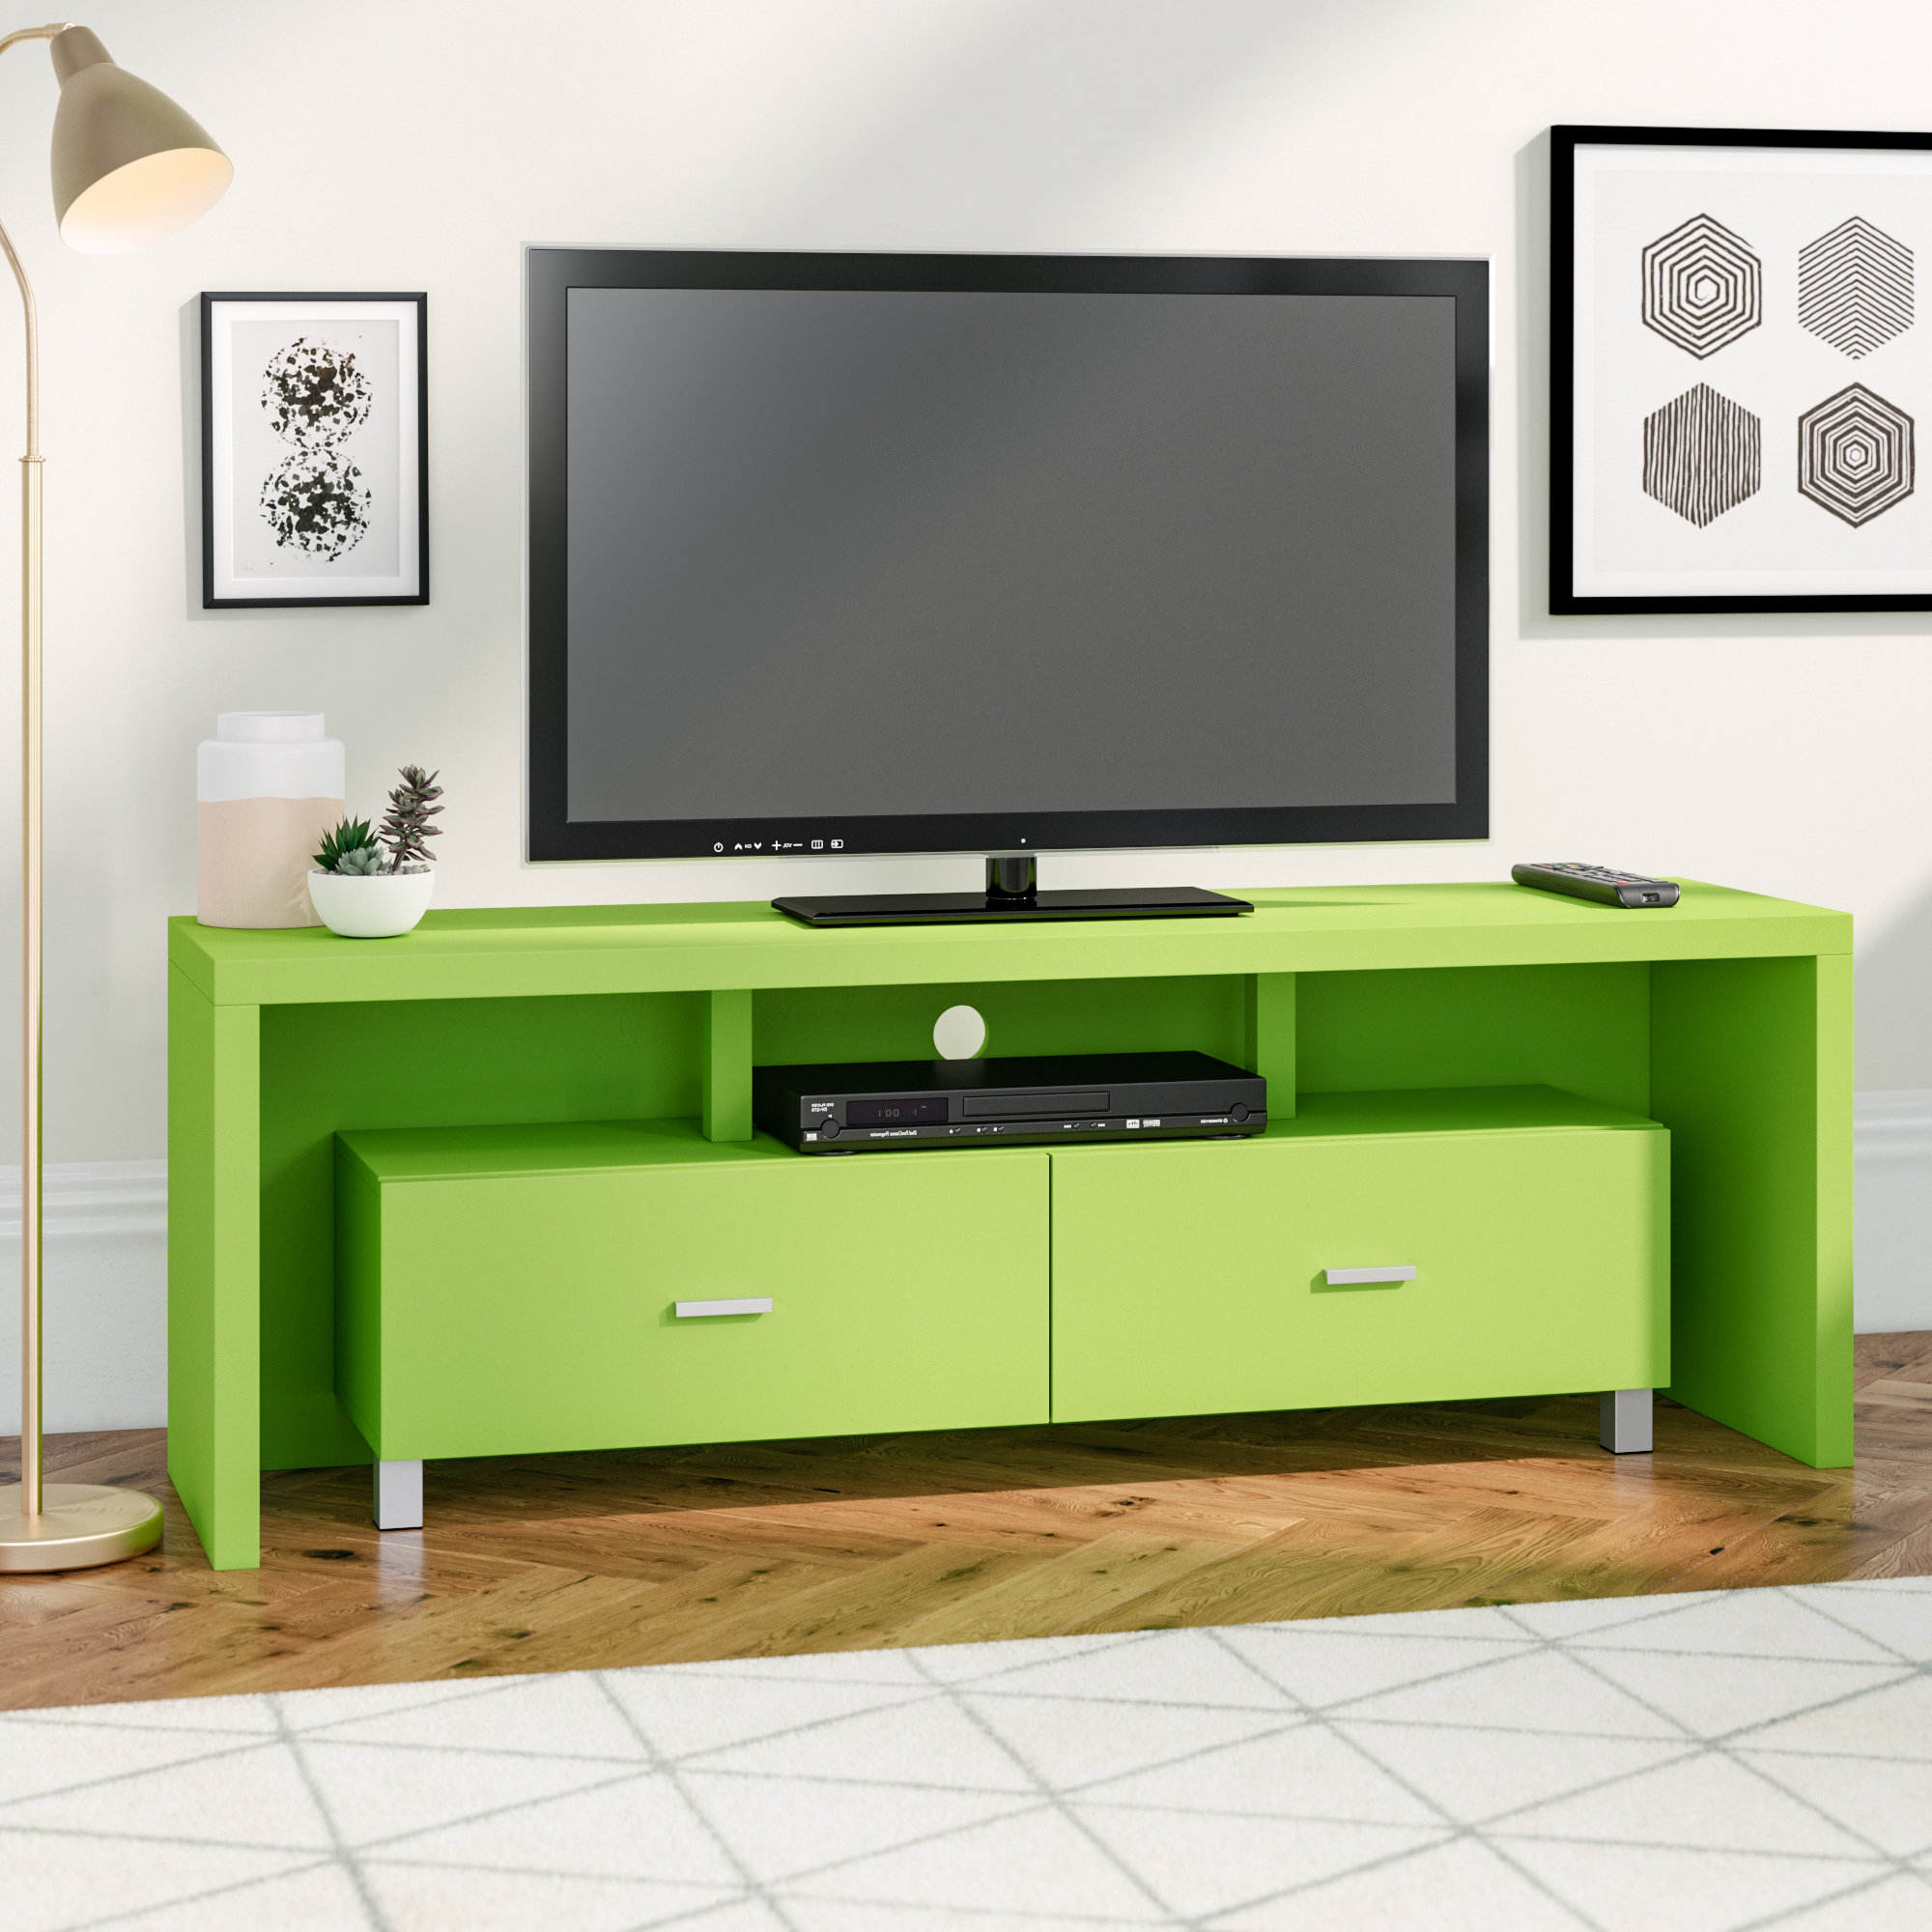 Wayfair Pertaining To Hokku Tv Stands (View 16 of 20)